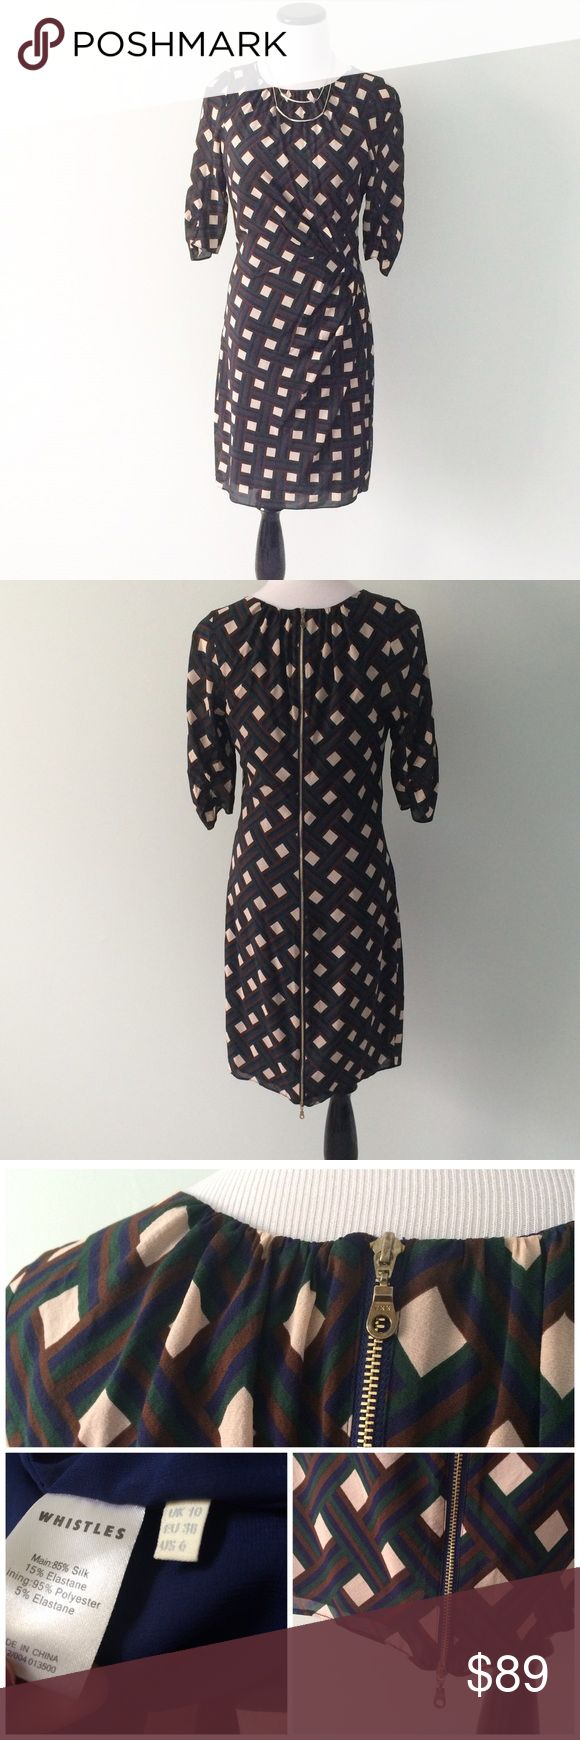 """WHISTLES UK Navy blue brown Silk zipper Dress High-end UK brand. Beautiful 85% silk and 15% elastane dress. Gently worn once. Navy blue, cream, brown and green. Full zipper on back of dress. Can be zipped from top or bottom. Ruched on side of waist. Fully lined. Length 36"""".  Chest 17.5"""". ▪️UK size 10, US size 6. Whistles Dresses"""